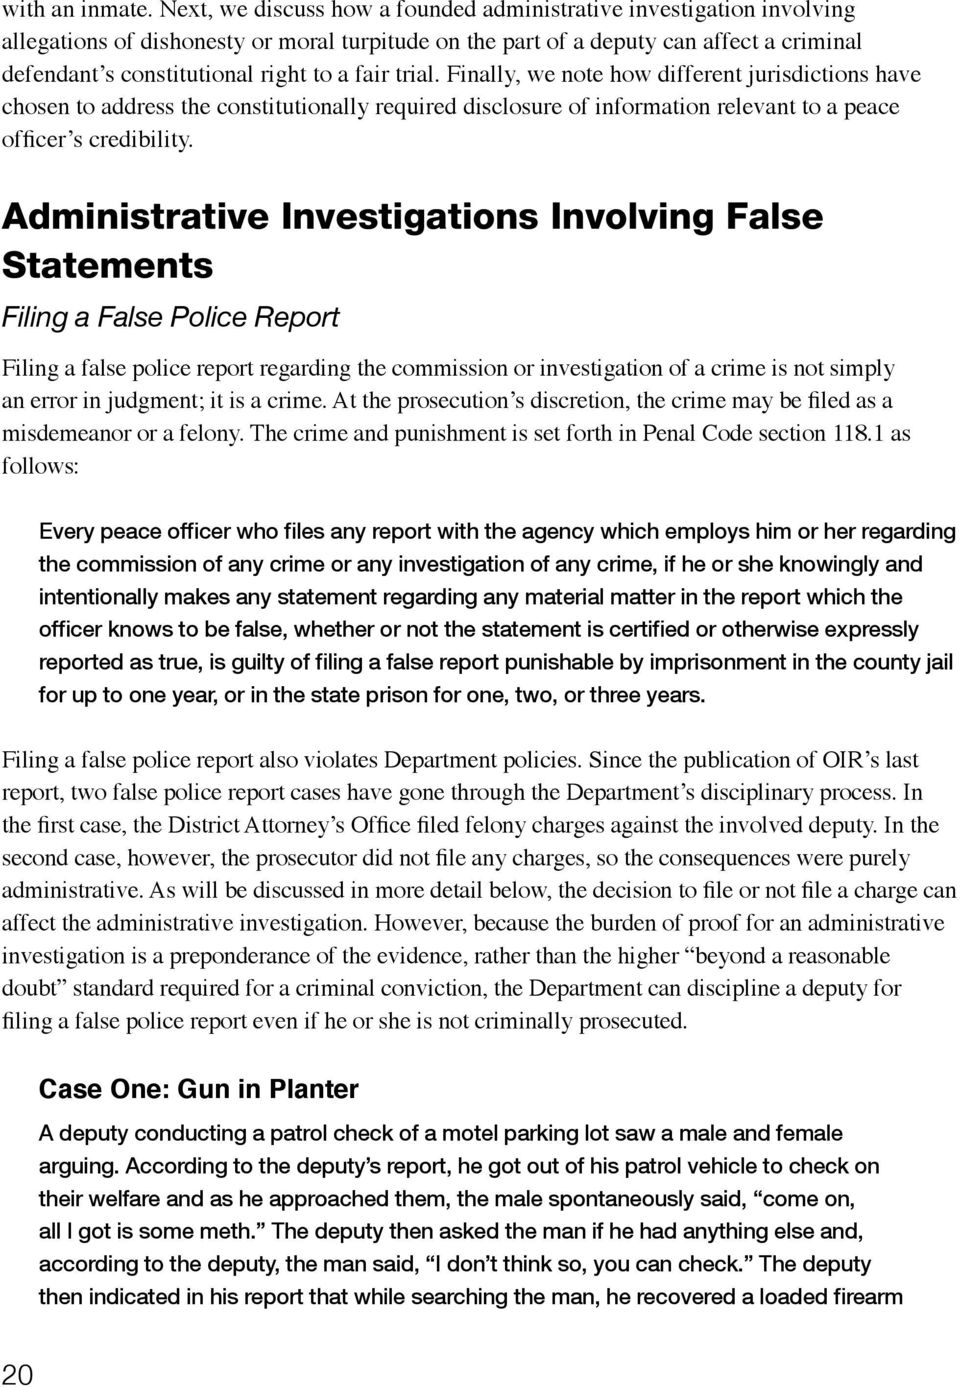 fair trial. Finally, we note how different jurisdictions have chosen to address the constitutionally required disclosure of information relevant to a peace officer s credibility.